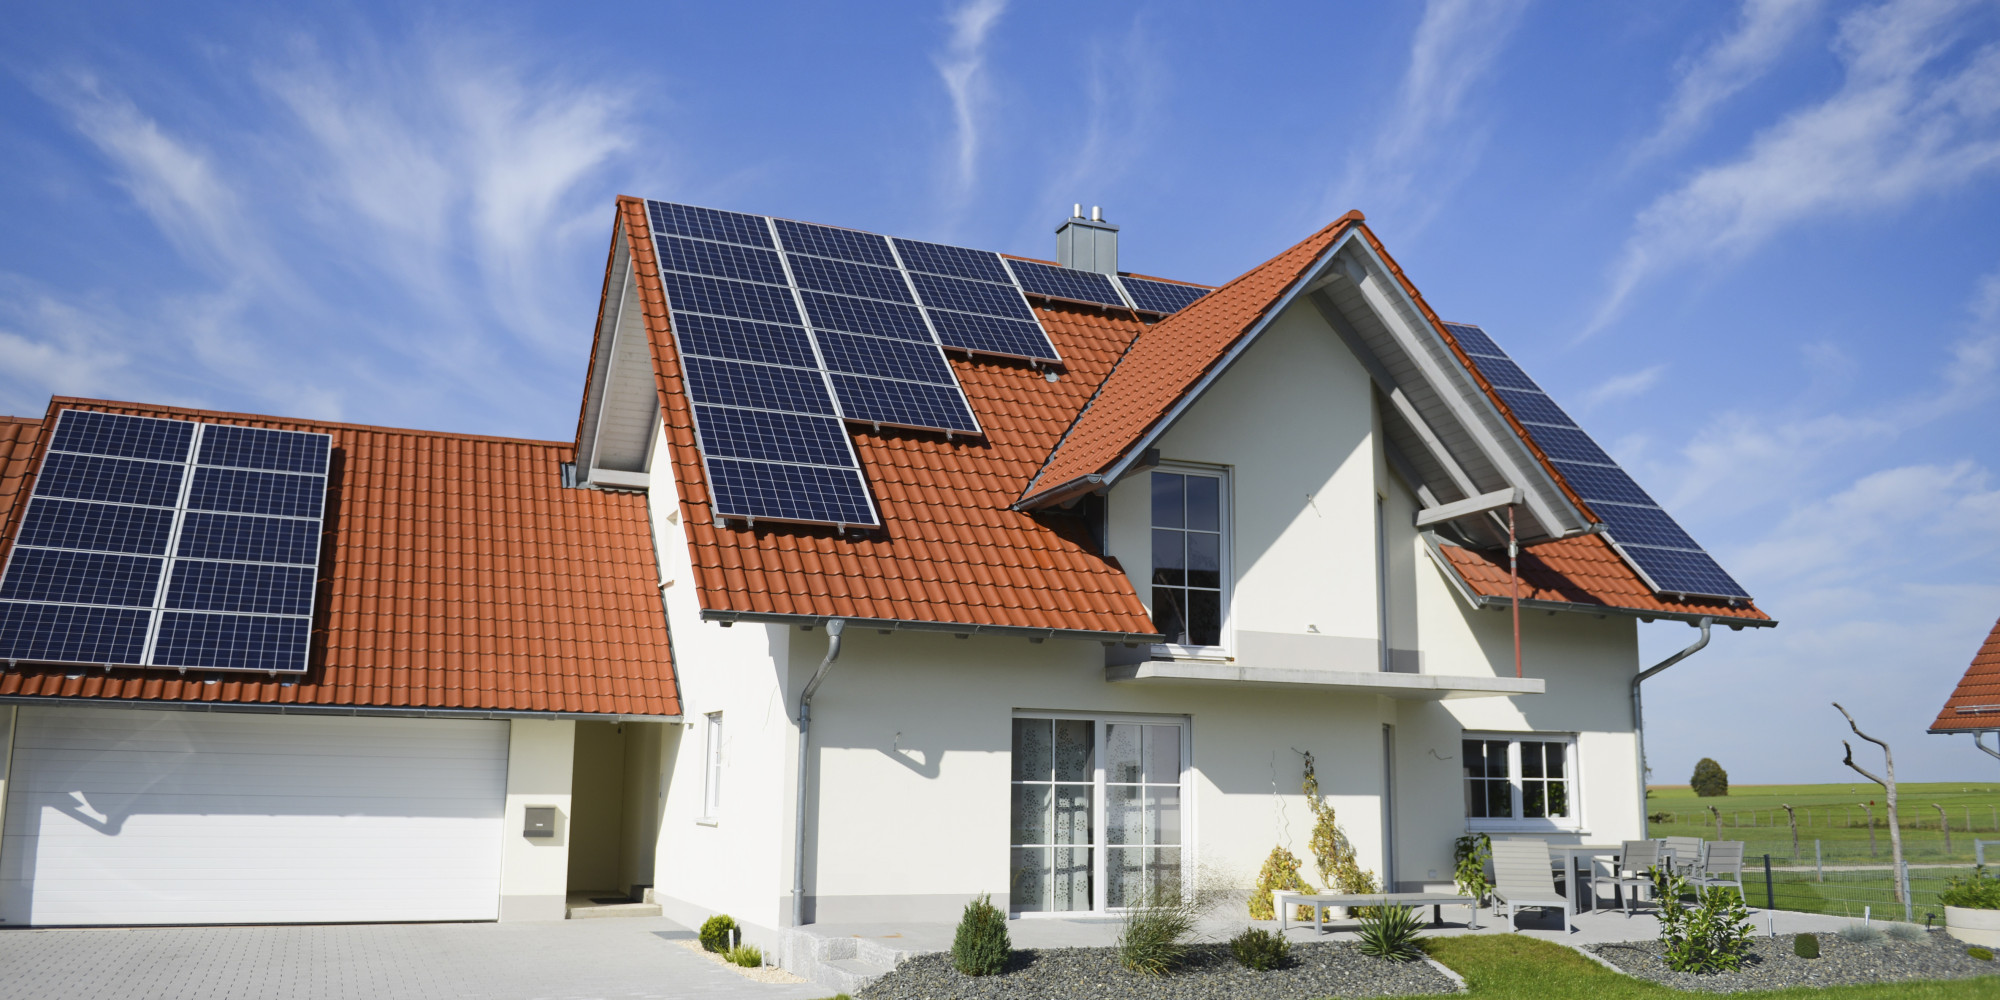 Solar Owners Are Givers, Not Takers | Huffington Post